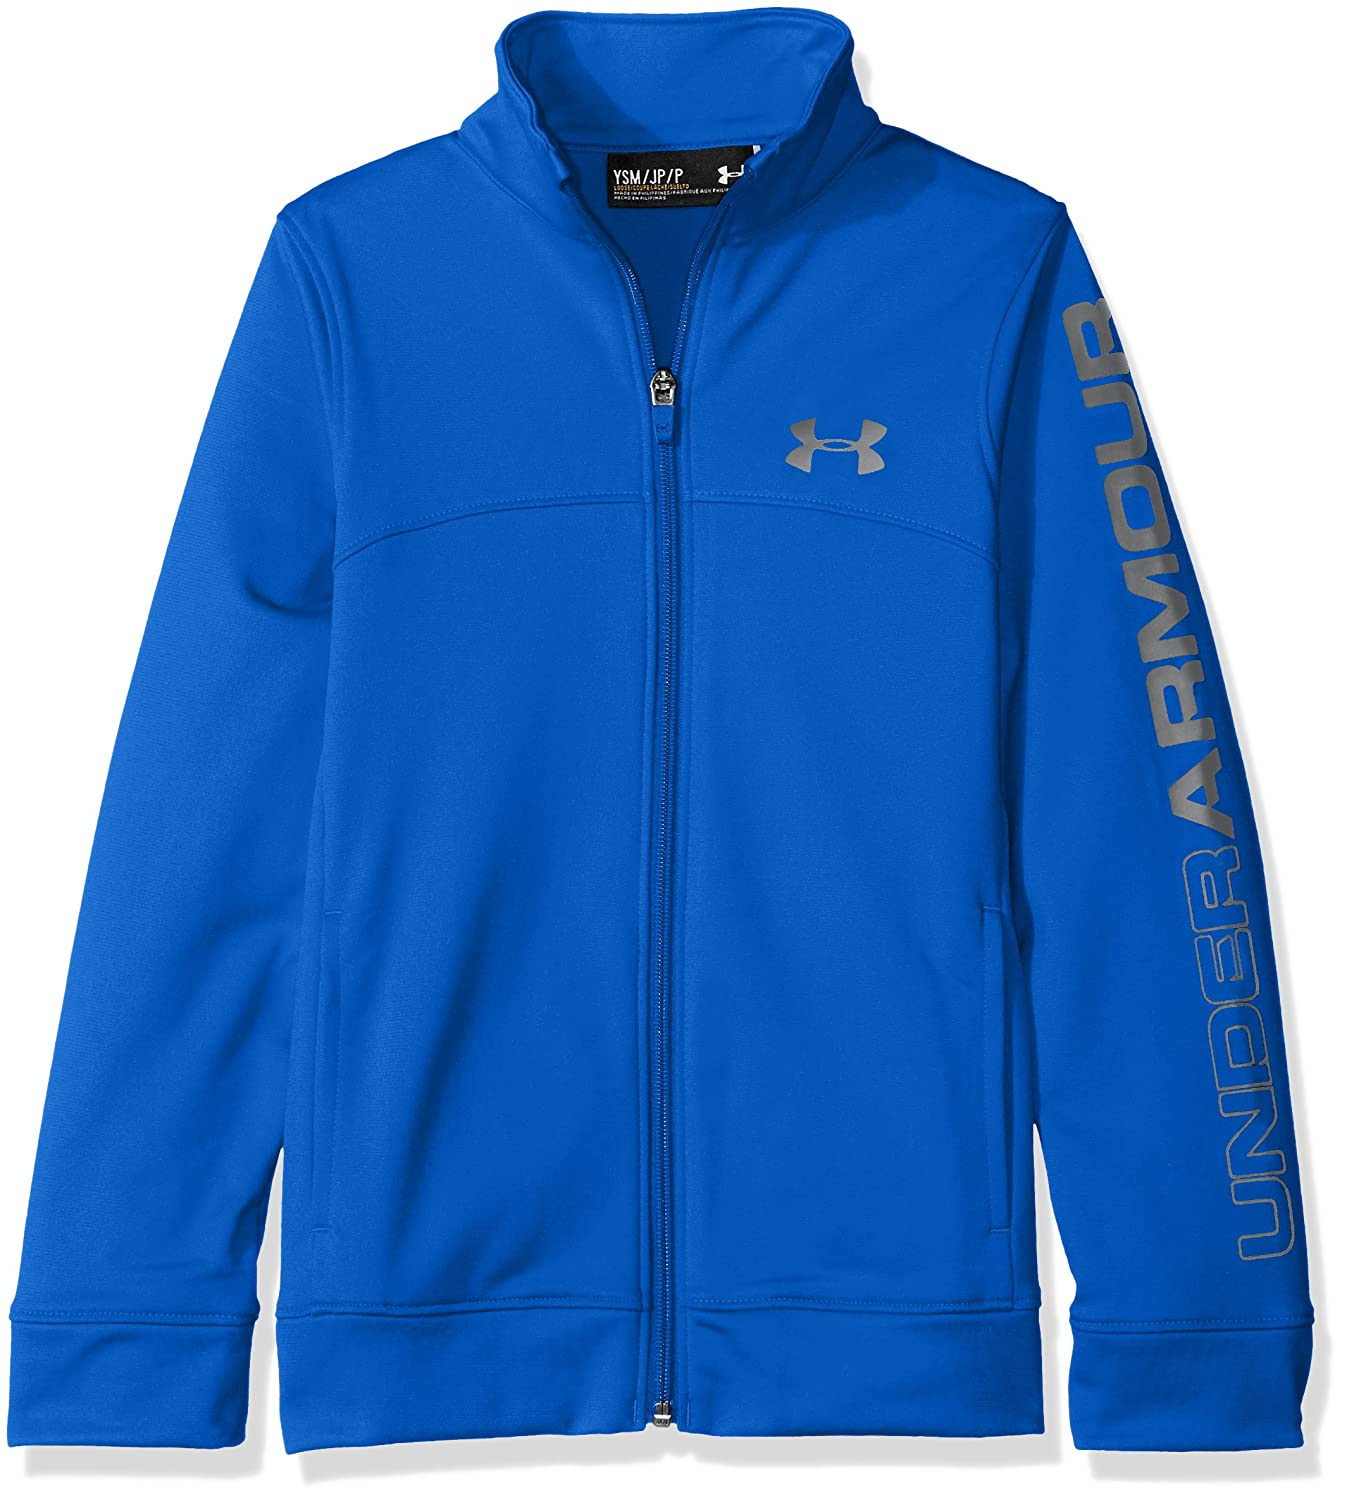 Under Armour Boys' Pennant Warm Up Jacket Under Armour Apparel 1281069